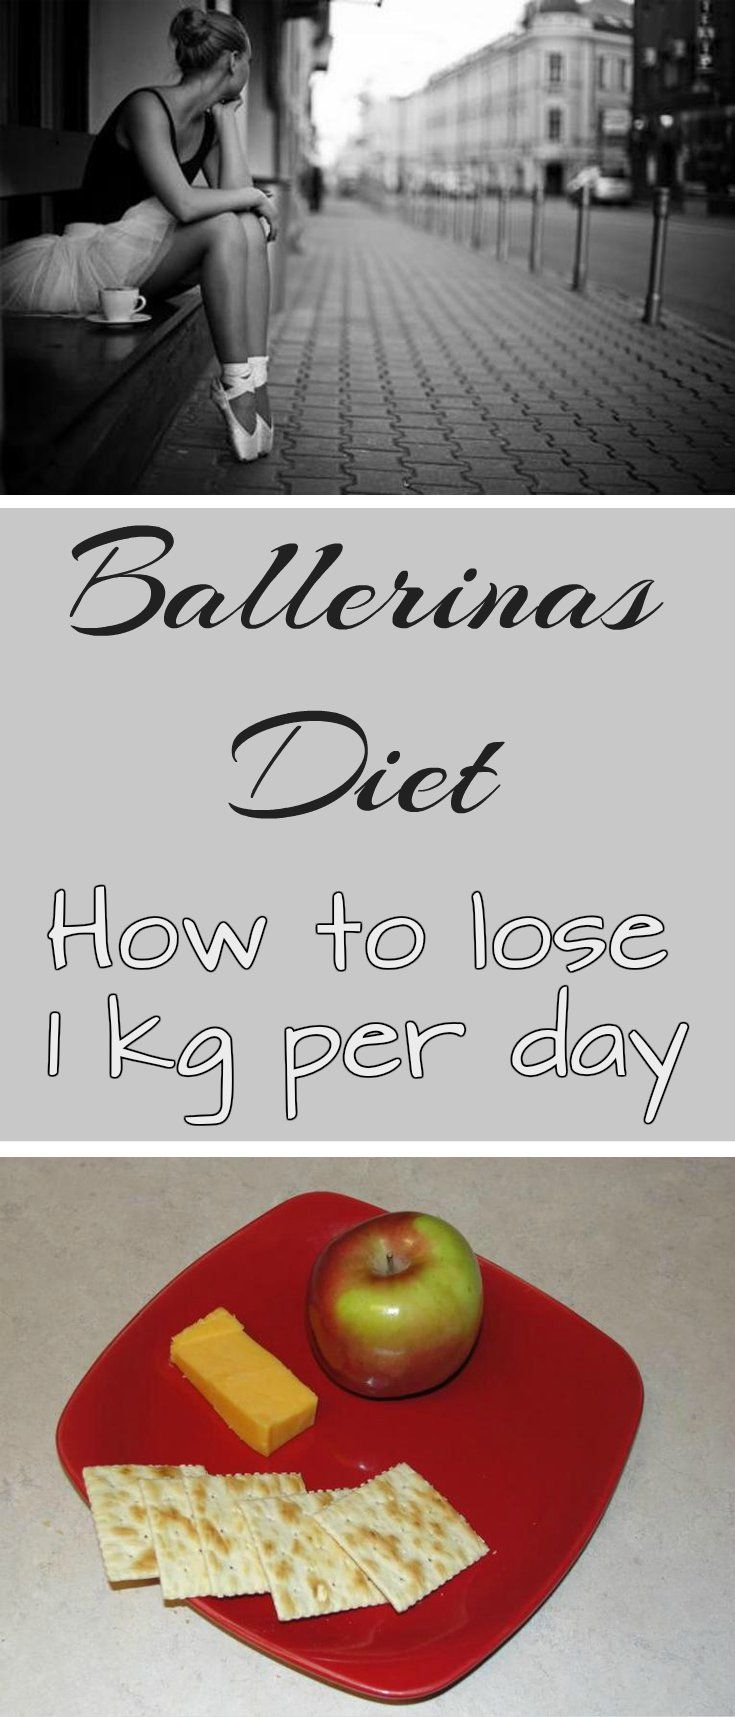 Ballerinas diet: How to lose 1 kg per day |Excellent diet for weight loss, find out more on the website : http://ultra-slim.gu.ma/